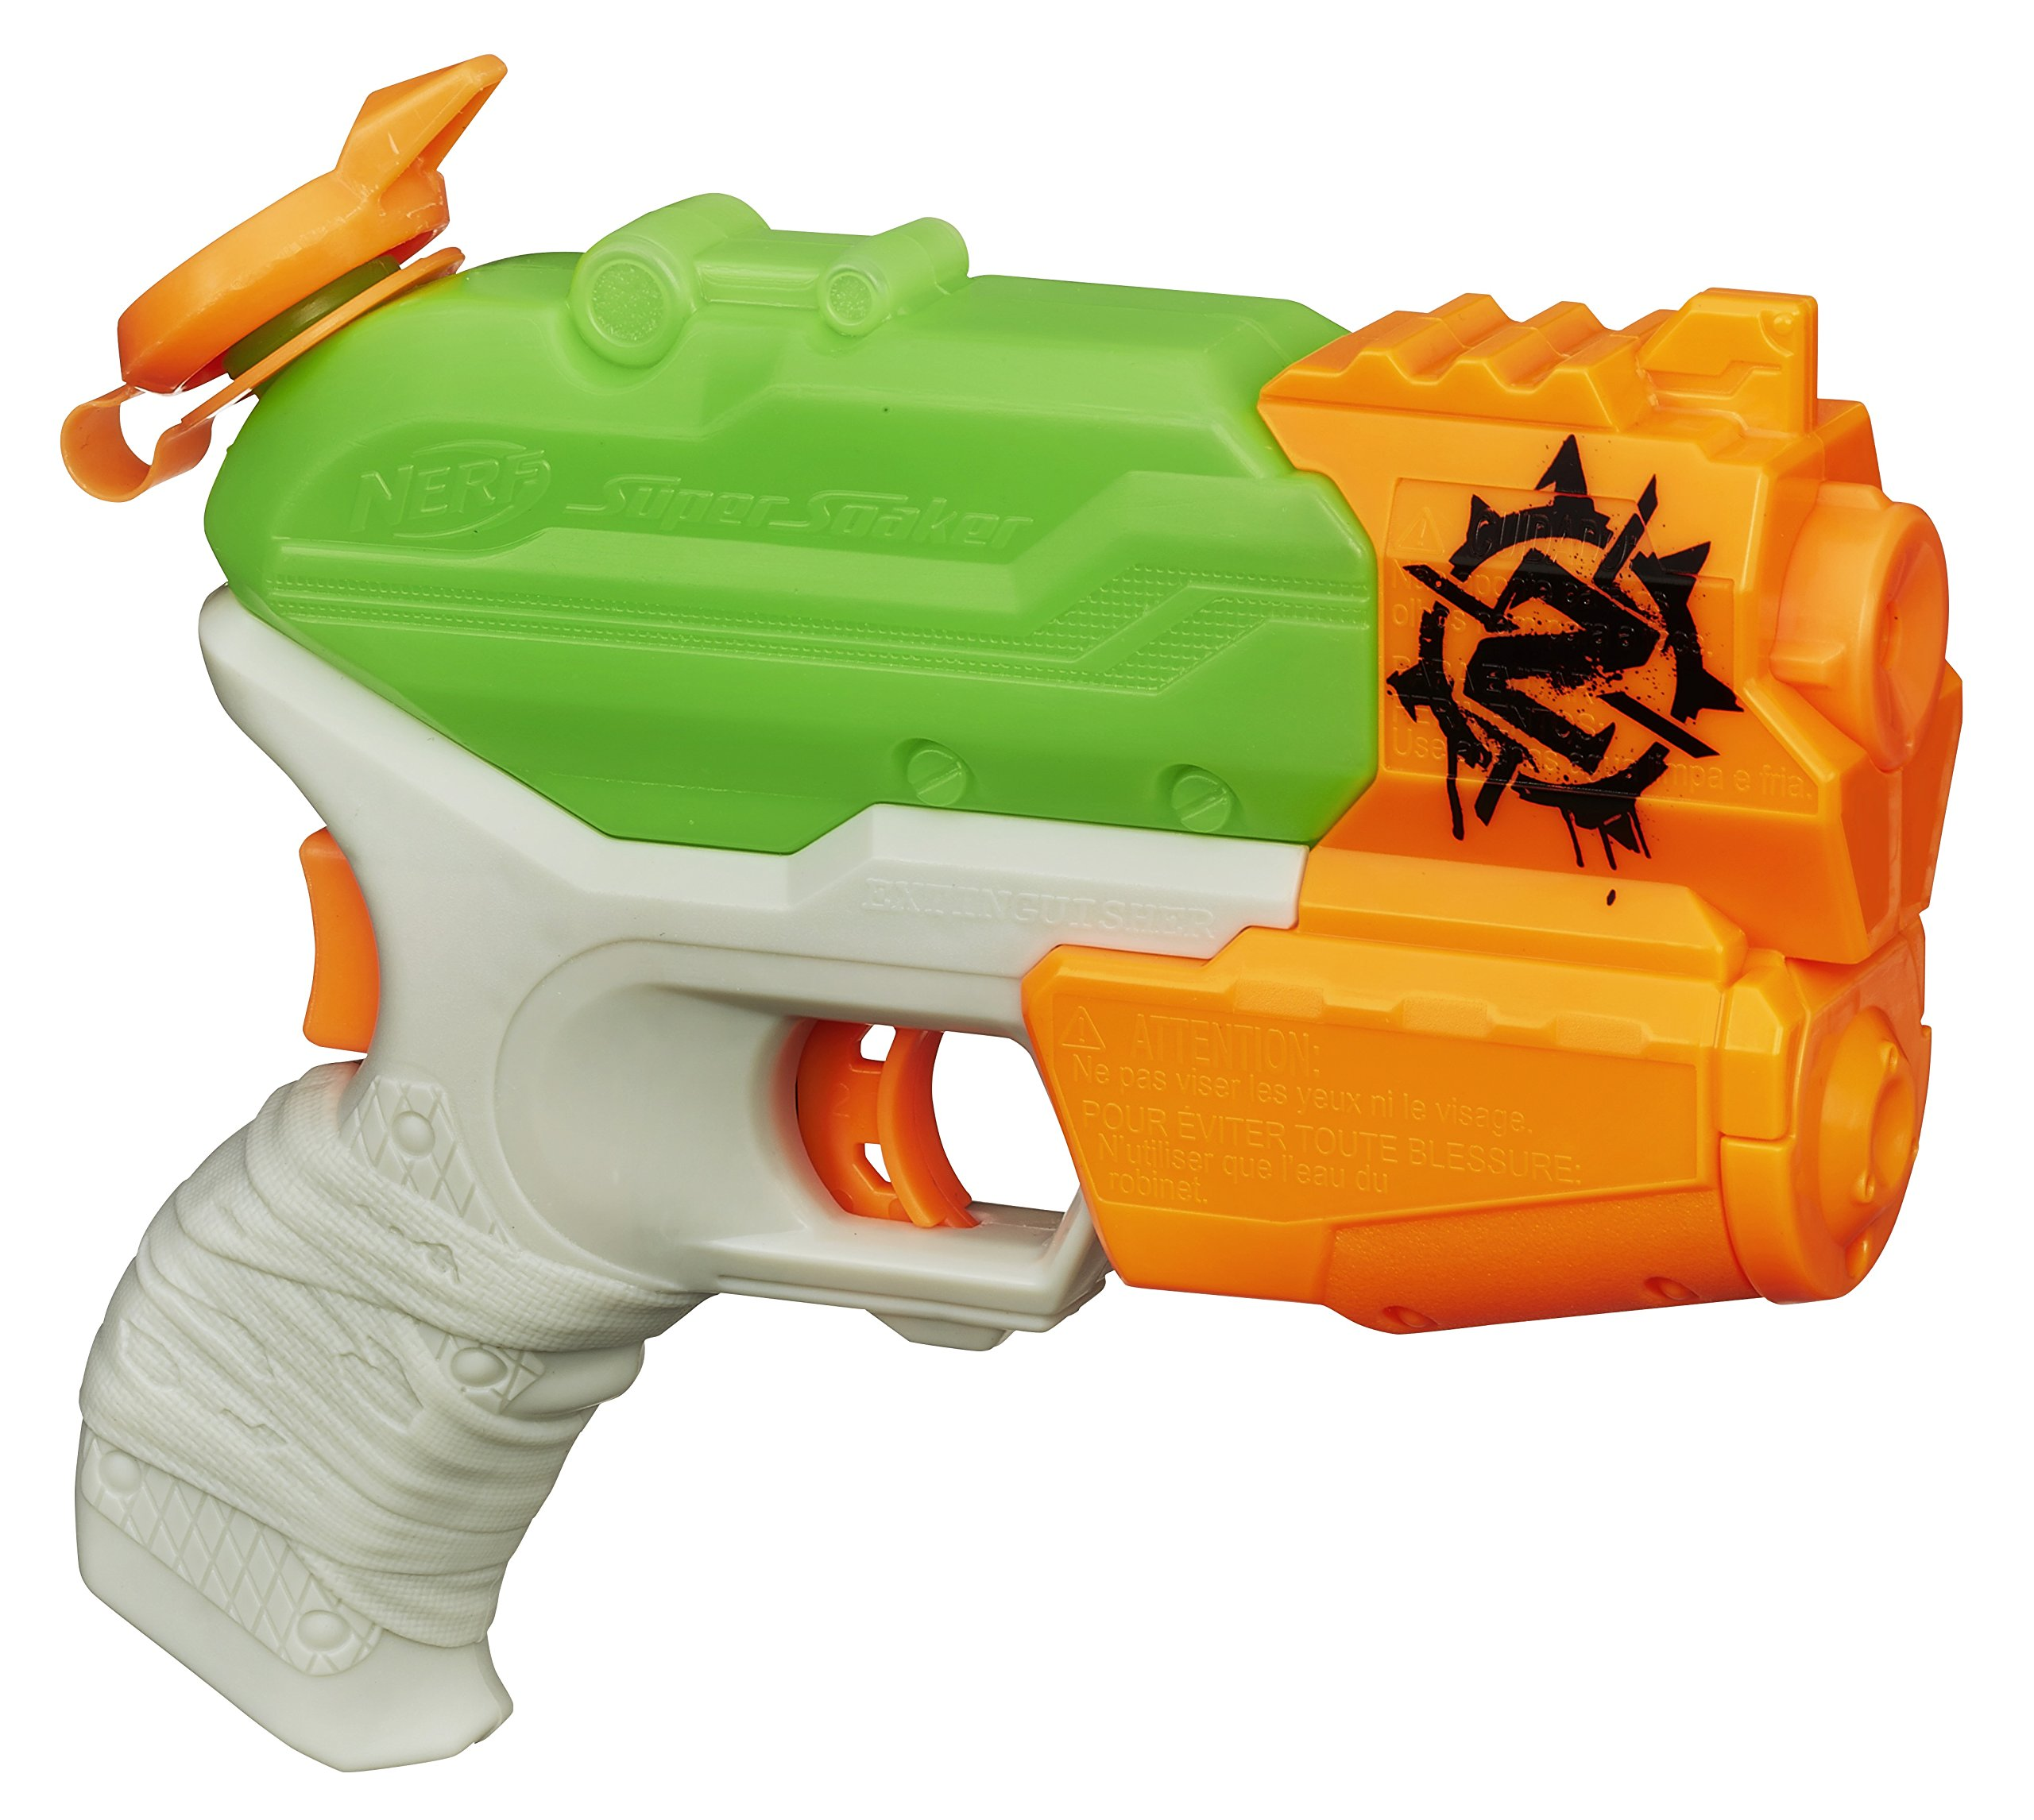 Big deal Nerf Zombie Strike Side Strike Blaster discover this and many  other bargains in Crazy by Deals, we bring daily the best discounts for you